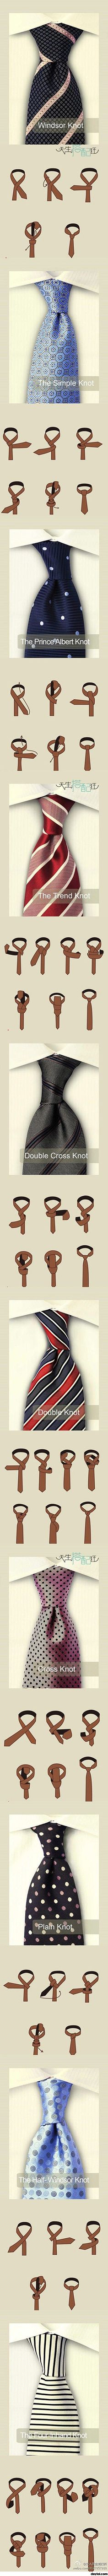 Find This Pin And More On Moda Masculina Learn How To Tie